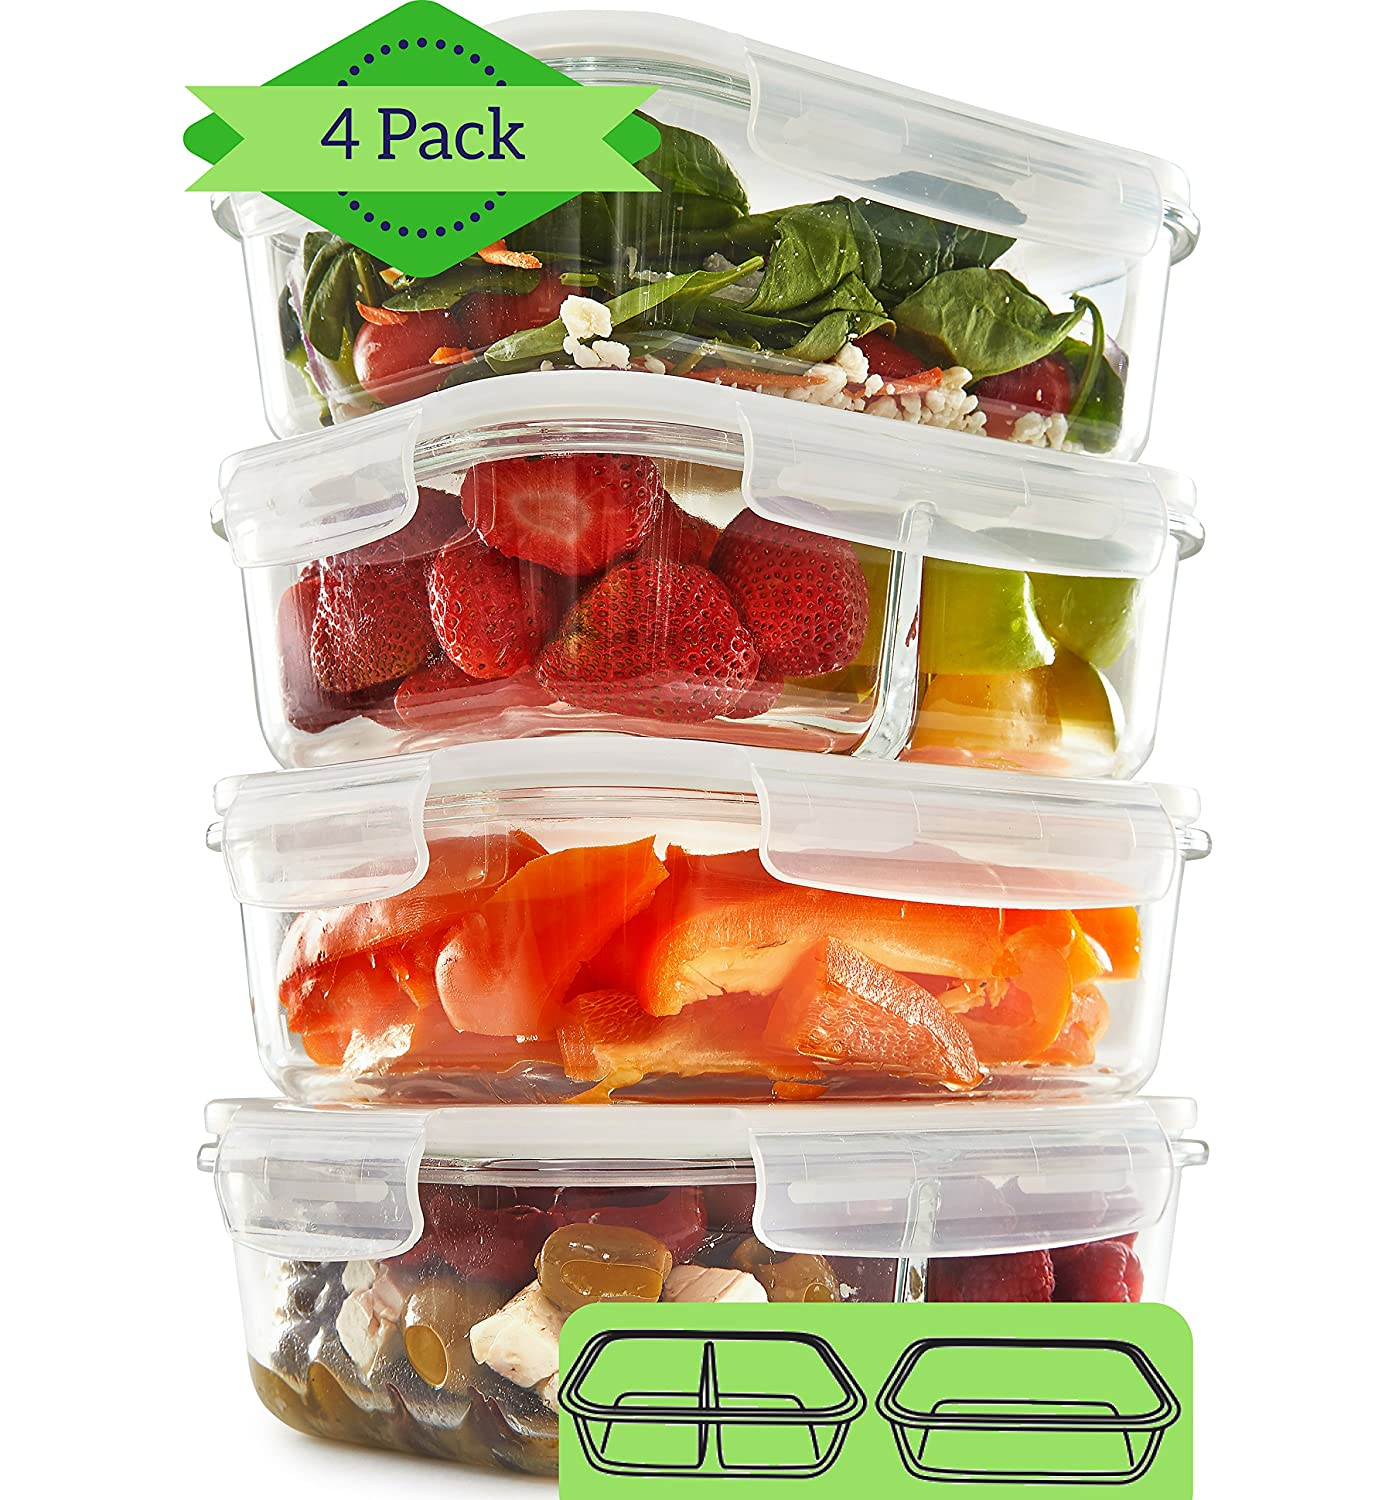 1 & 2 Compartment Glass Meal Prep Containers (4 Pack, 1000 ML) - Glass Lunch Containers | Food Storage Containers with Lids | Food Prep Containers | Bento Box | Portion Control Reusable Dishes FIT Strong & Healthy GlassMealPrep_Mixed_4_35